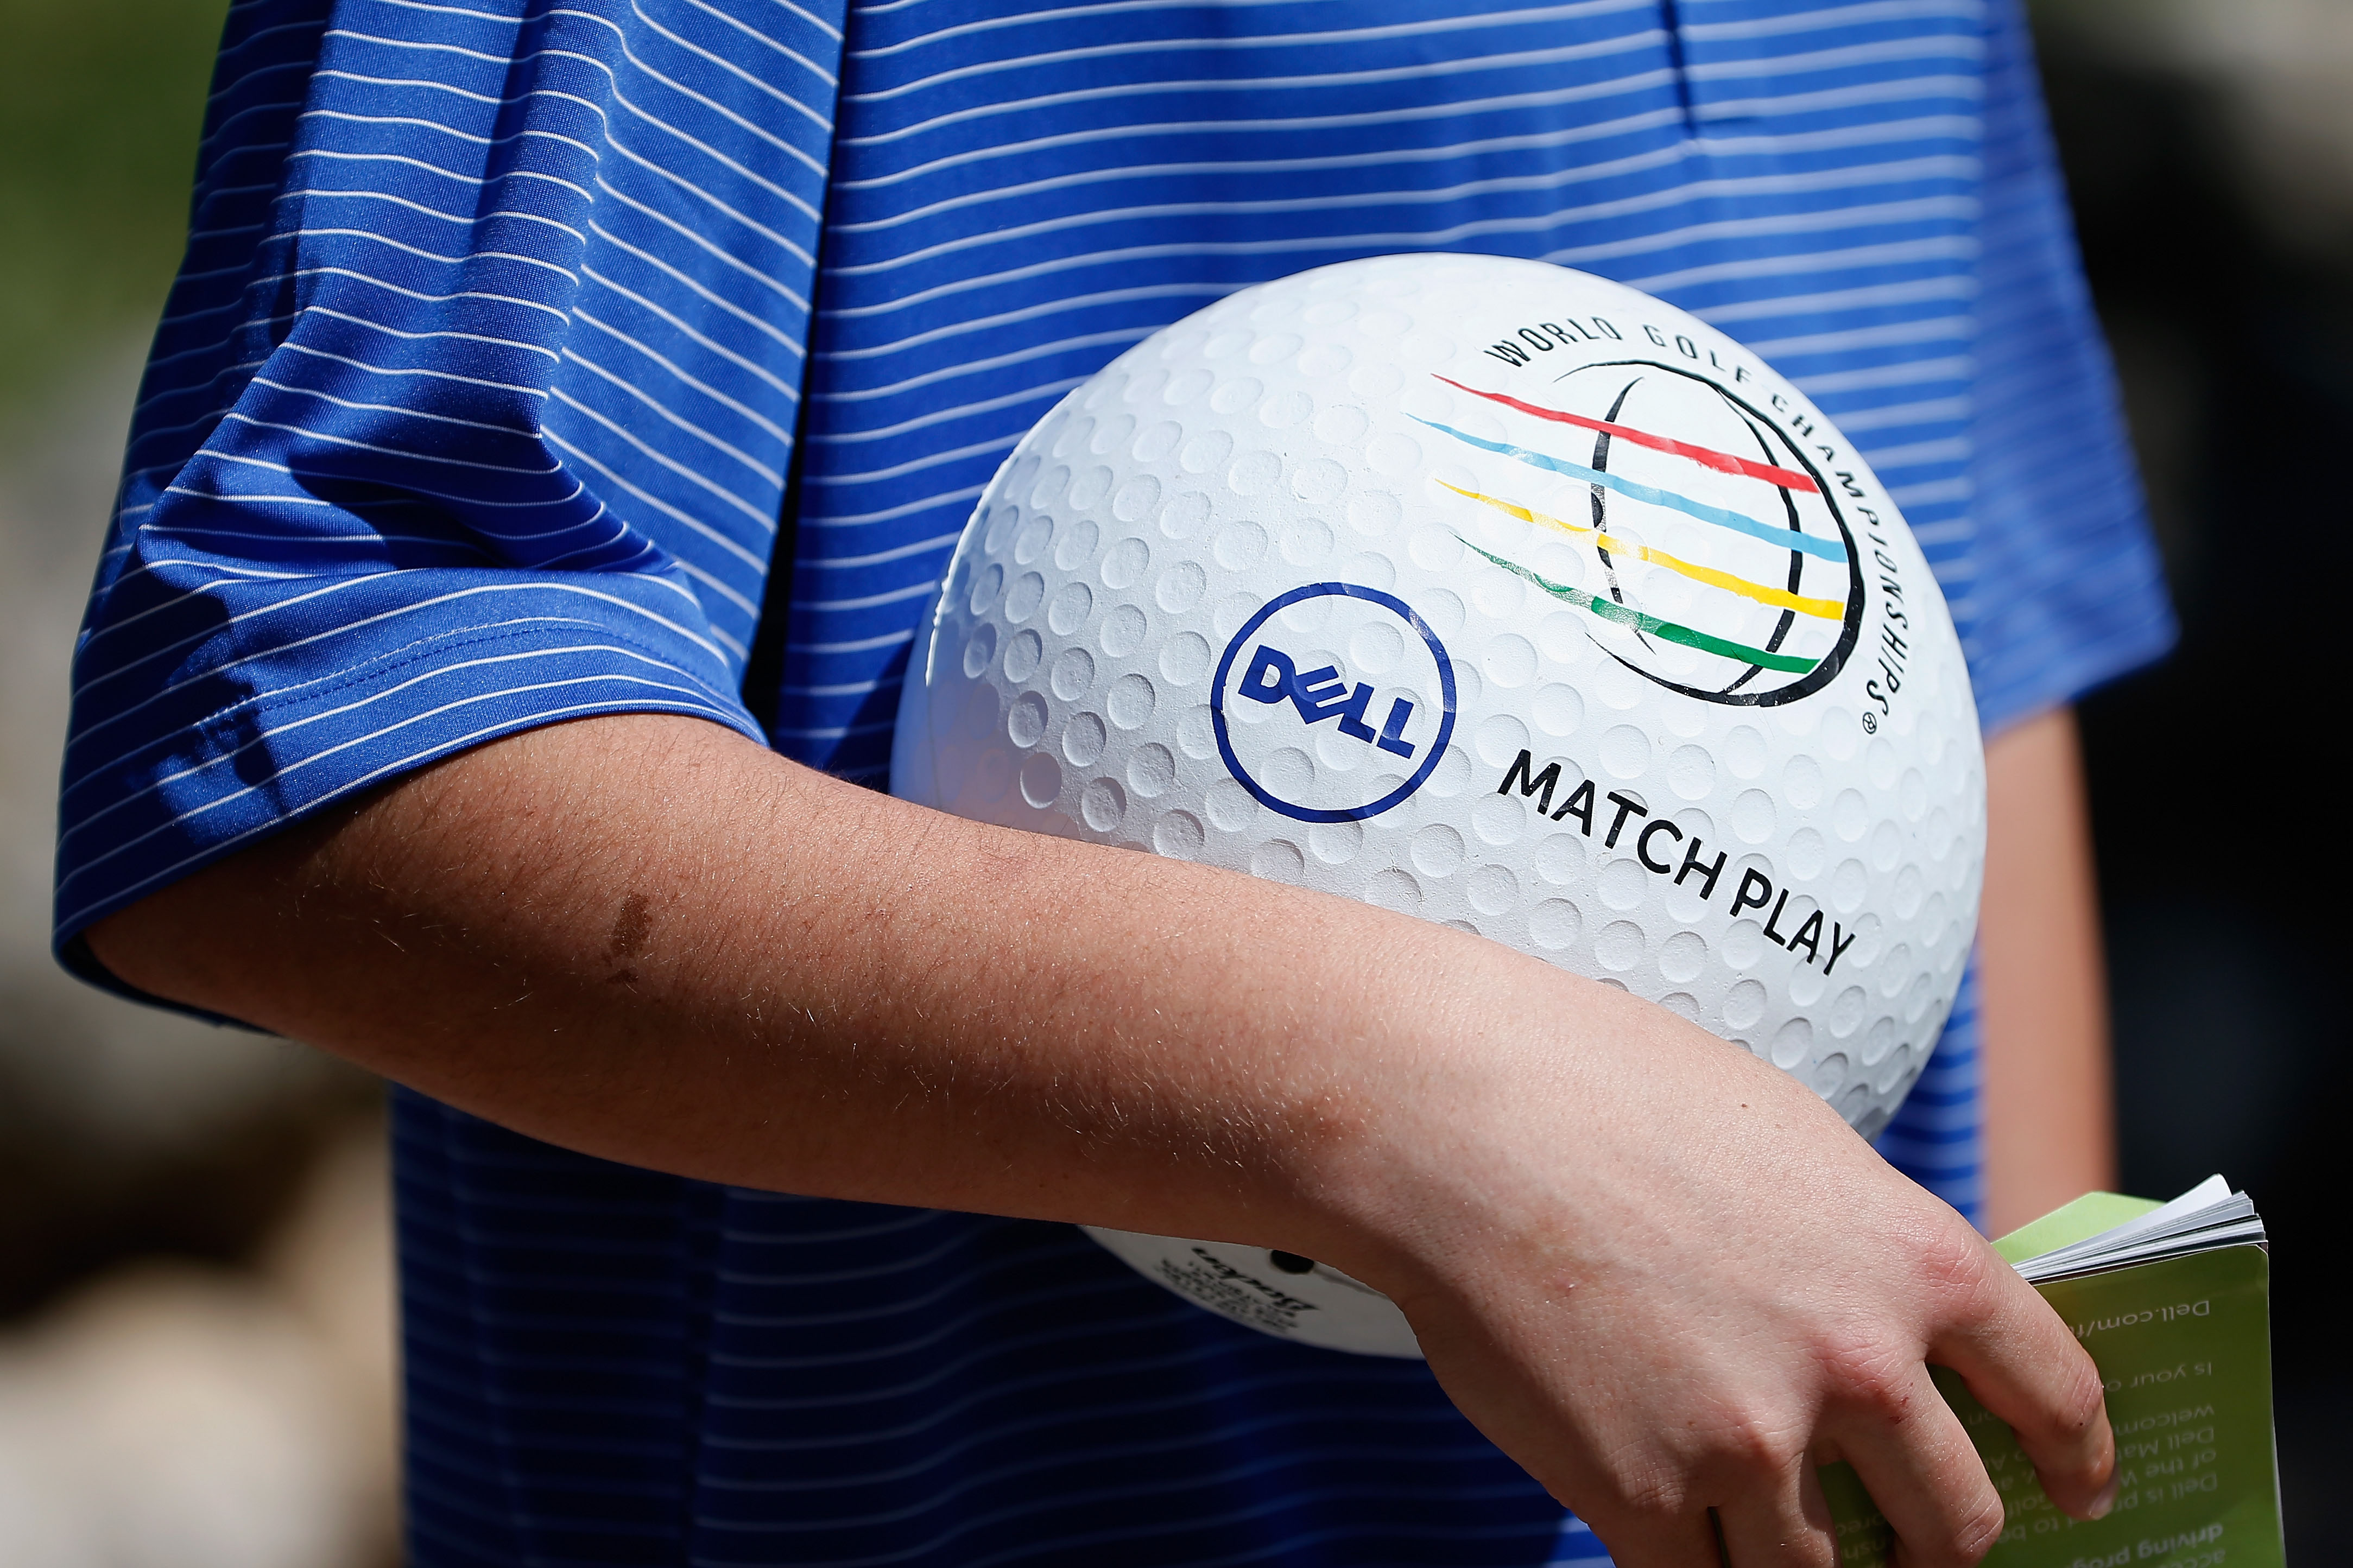 Let's see McIlroy work this ball